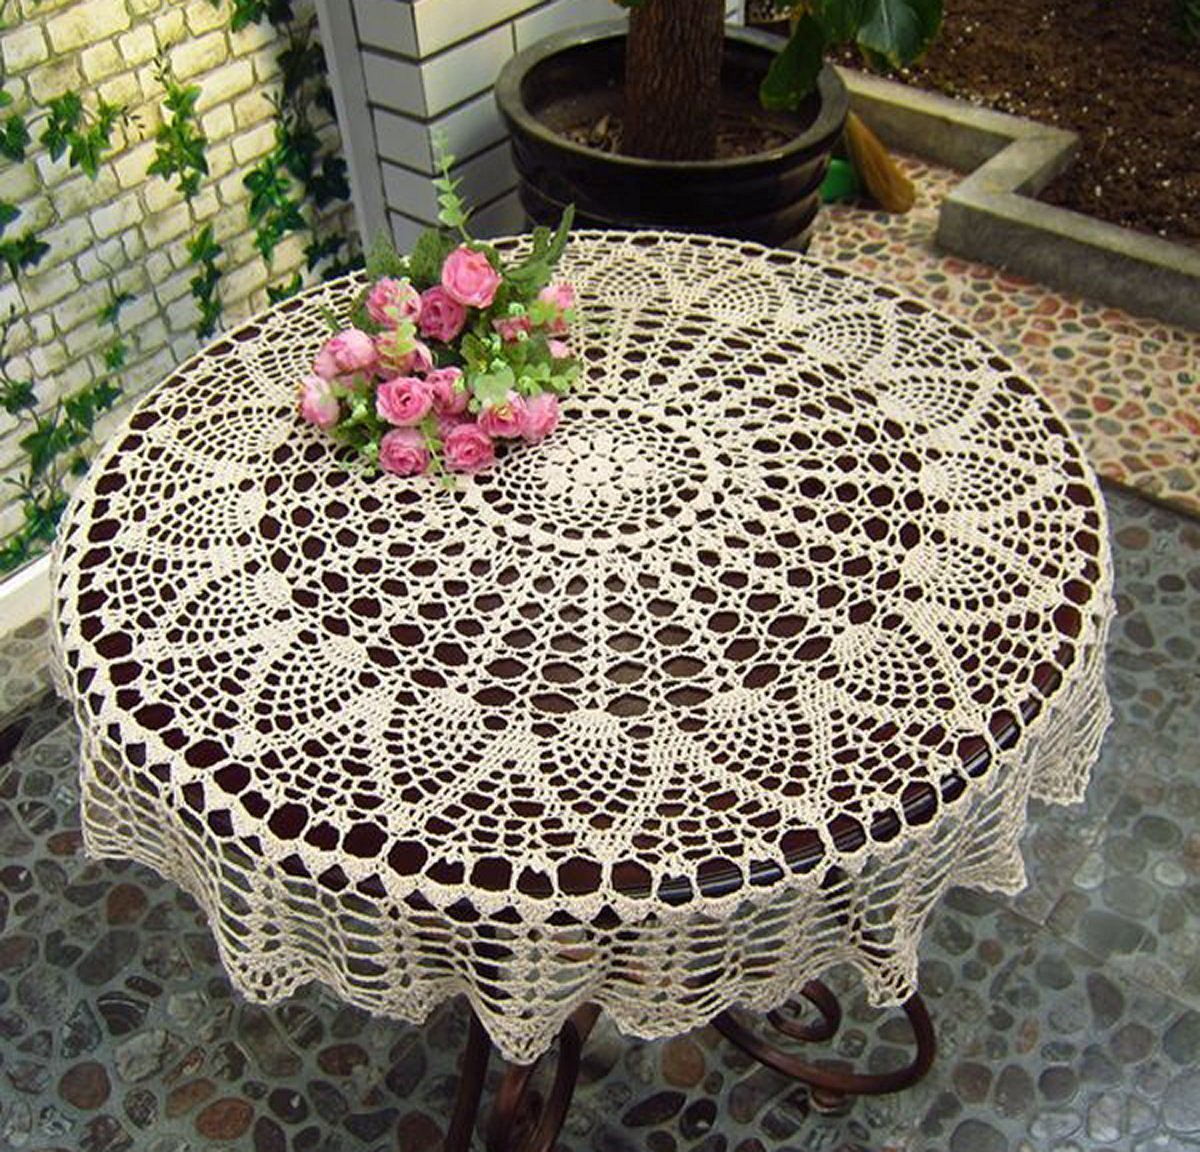 Amazon.com: New Beige 36u0027u0027 Round Handmade Crochet Sunflower Lace Table Cloth  Doily N06: Home U0026 Kitchen